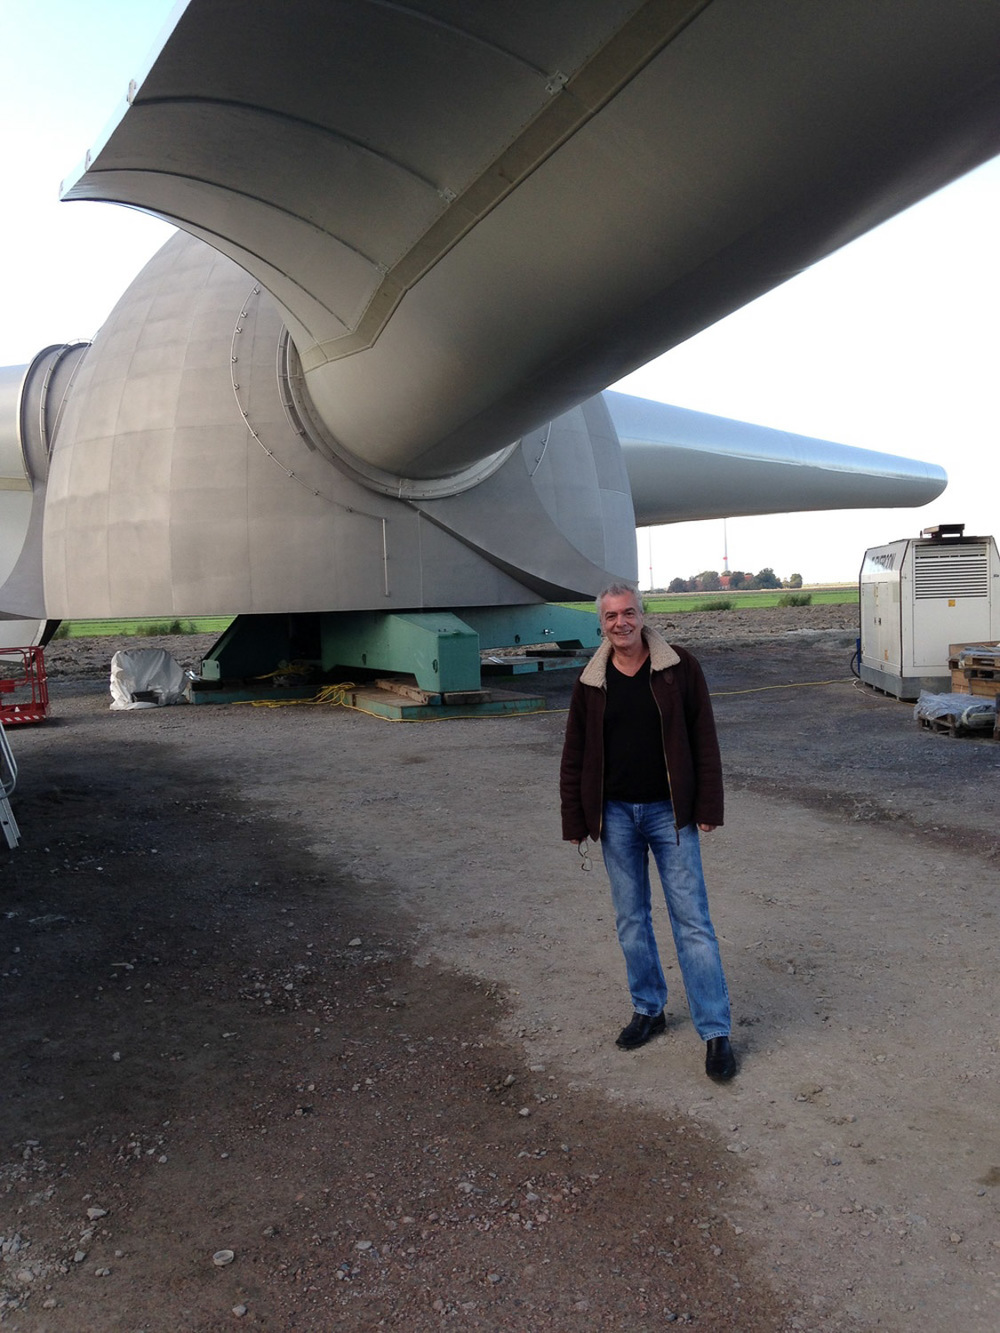 Ralph Ruppert, CEO, with the biggest commercially available wind turbine in the world in the background